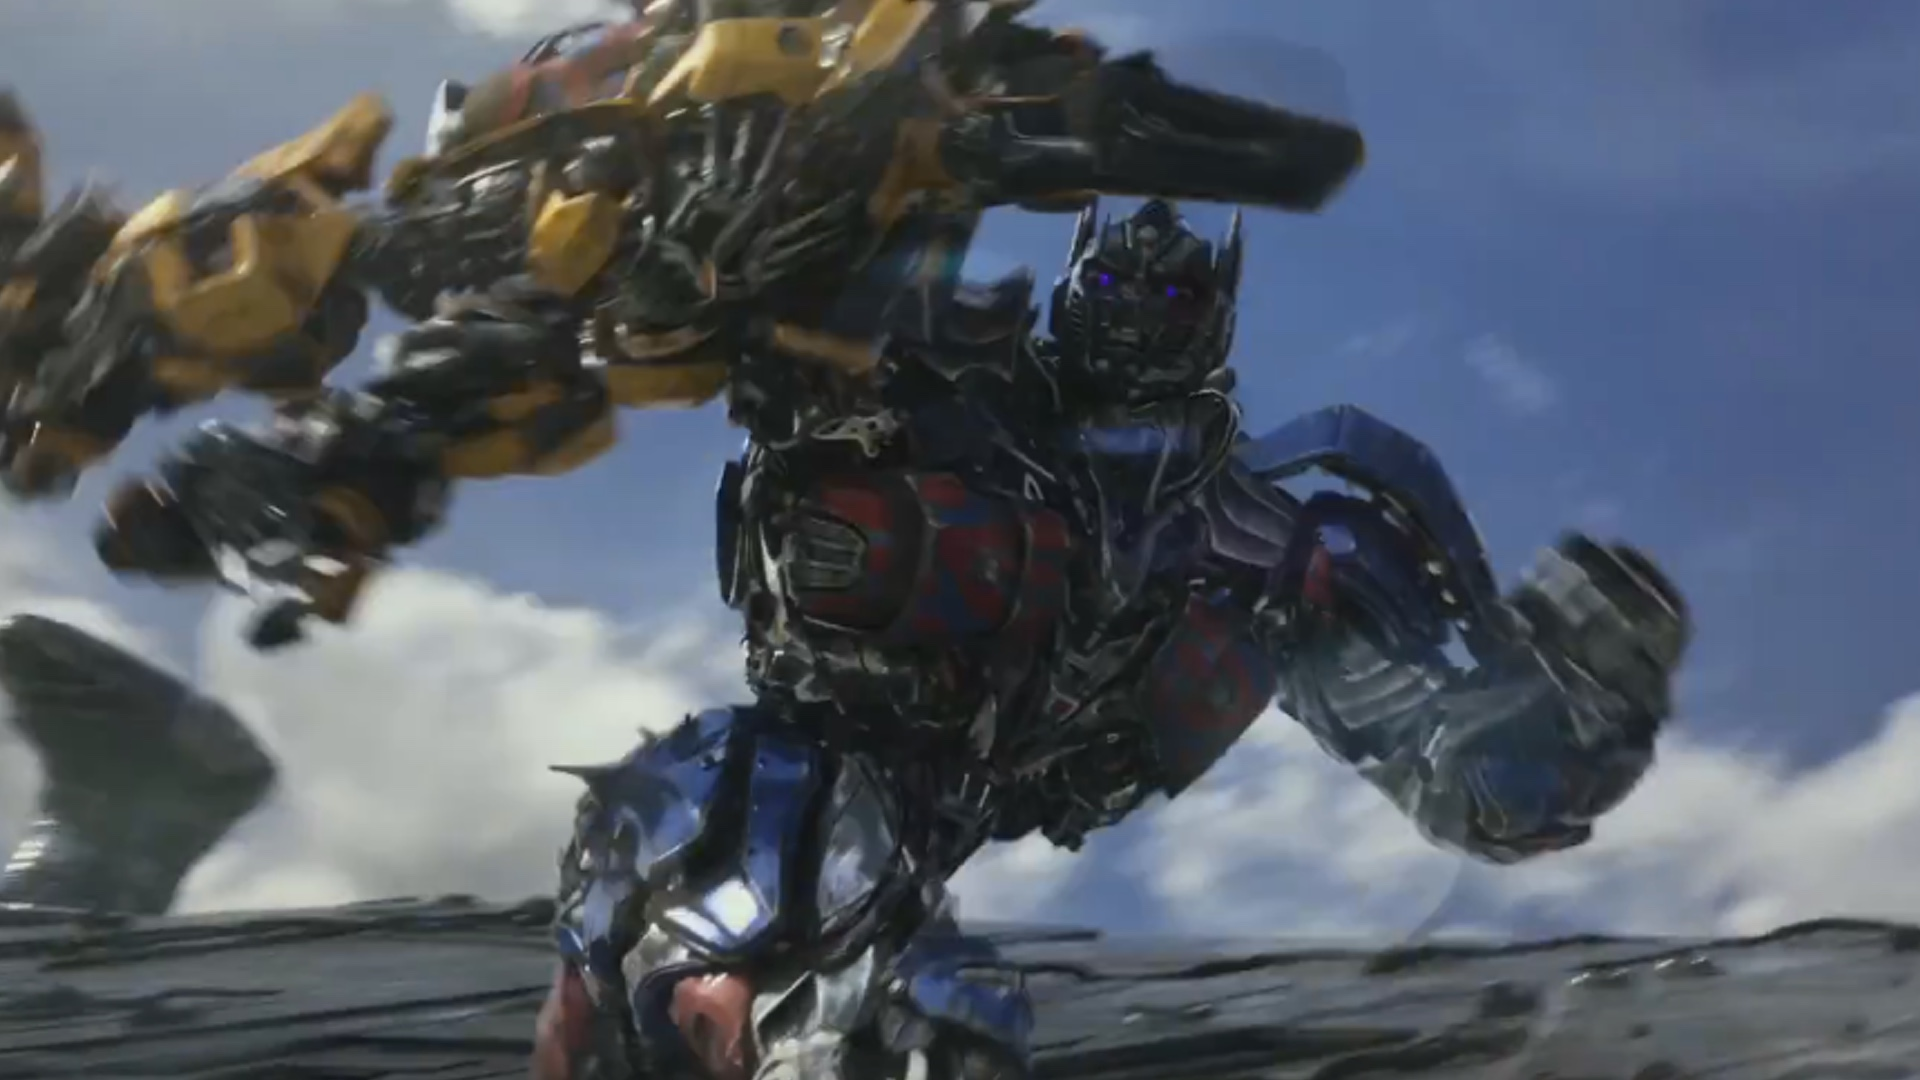 optimus prime fights bumblebee in first trailer for transformers